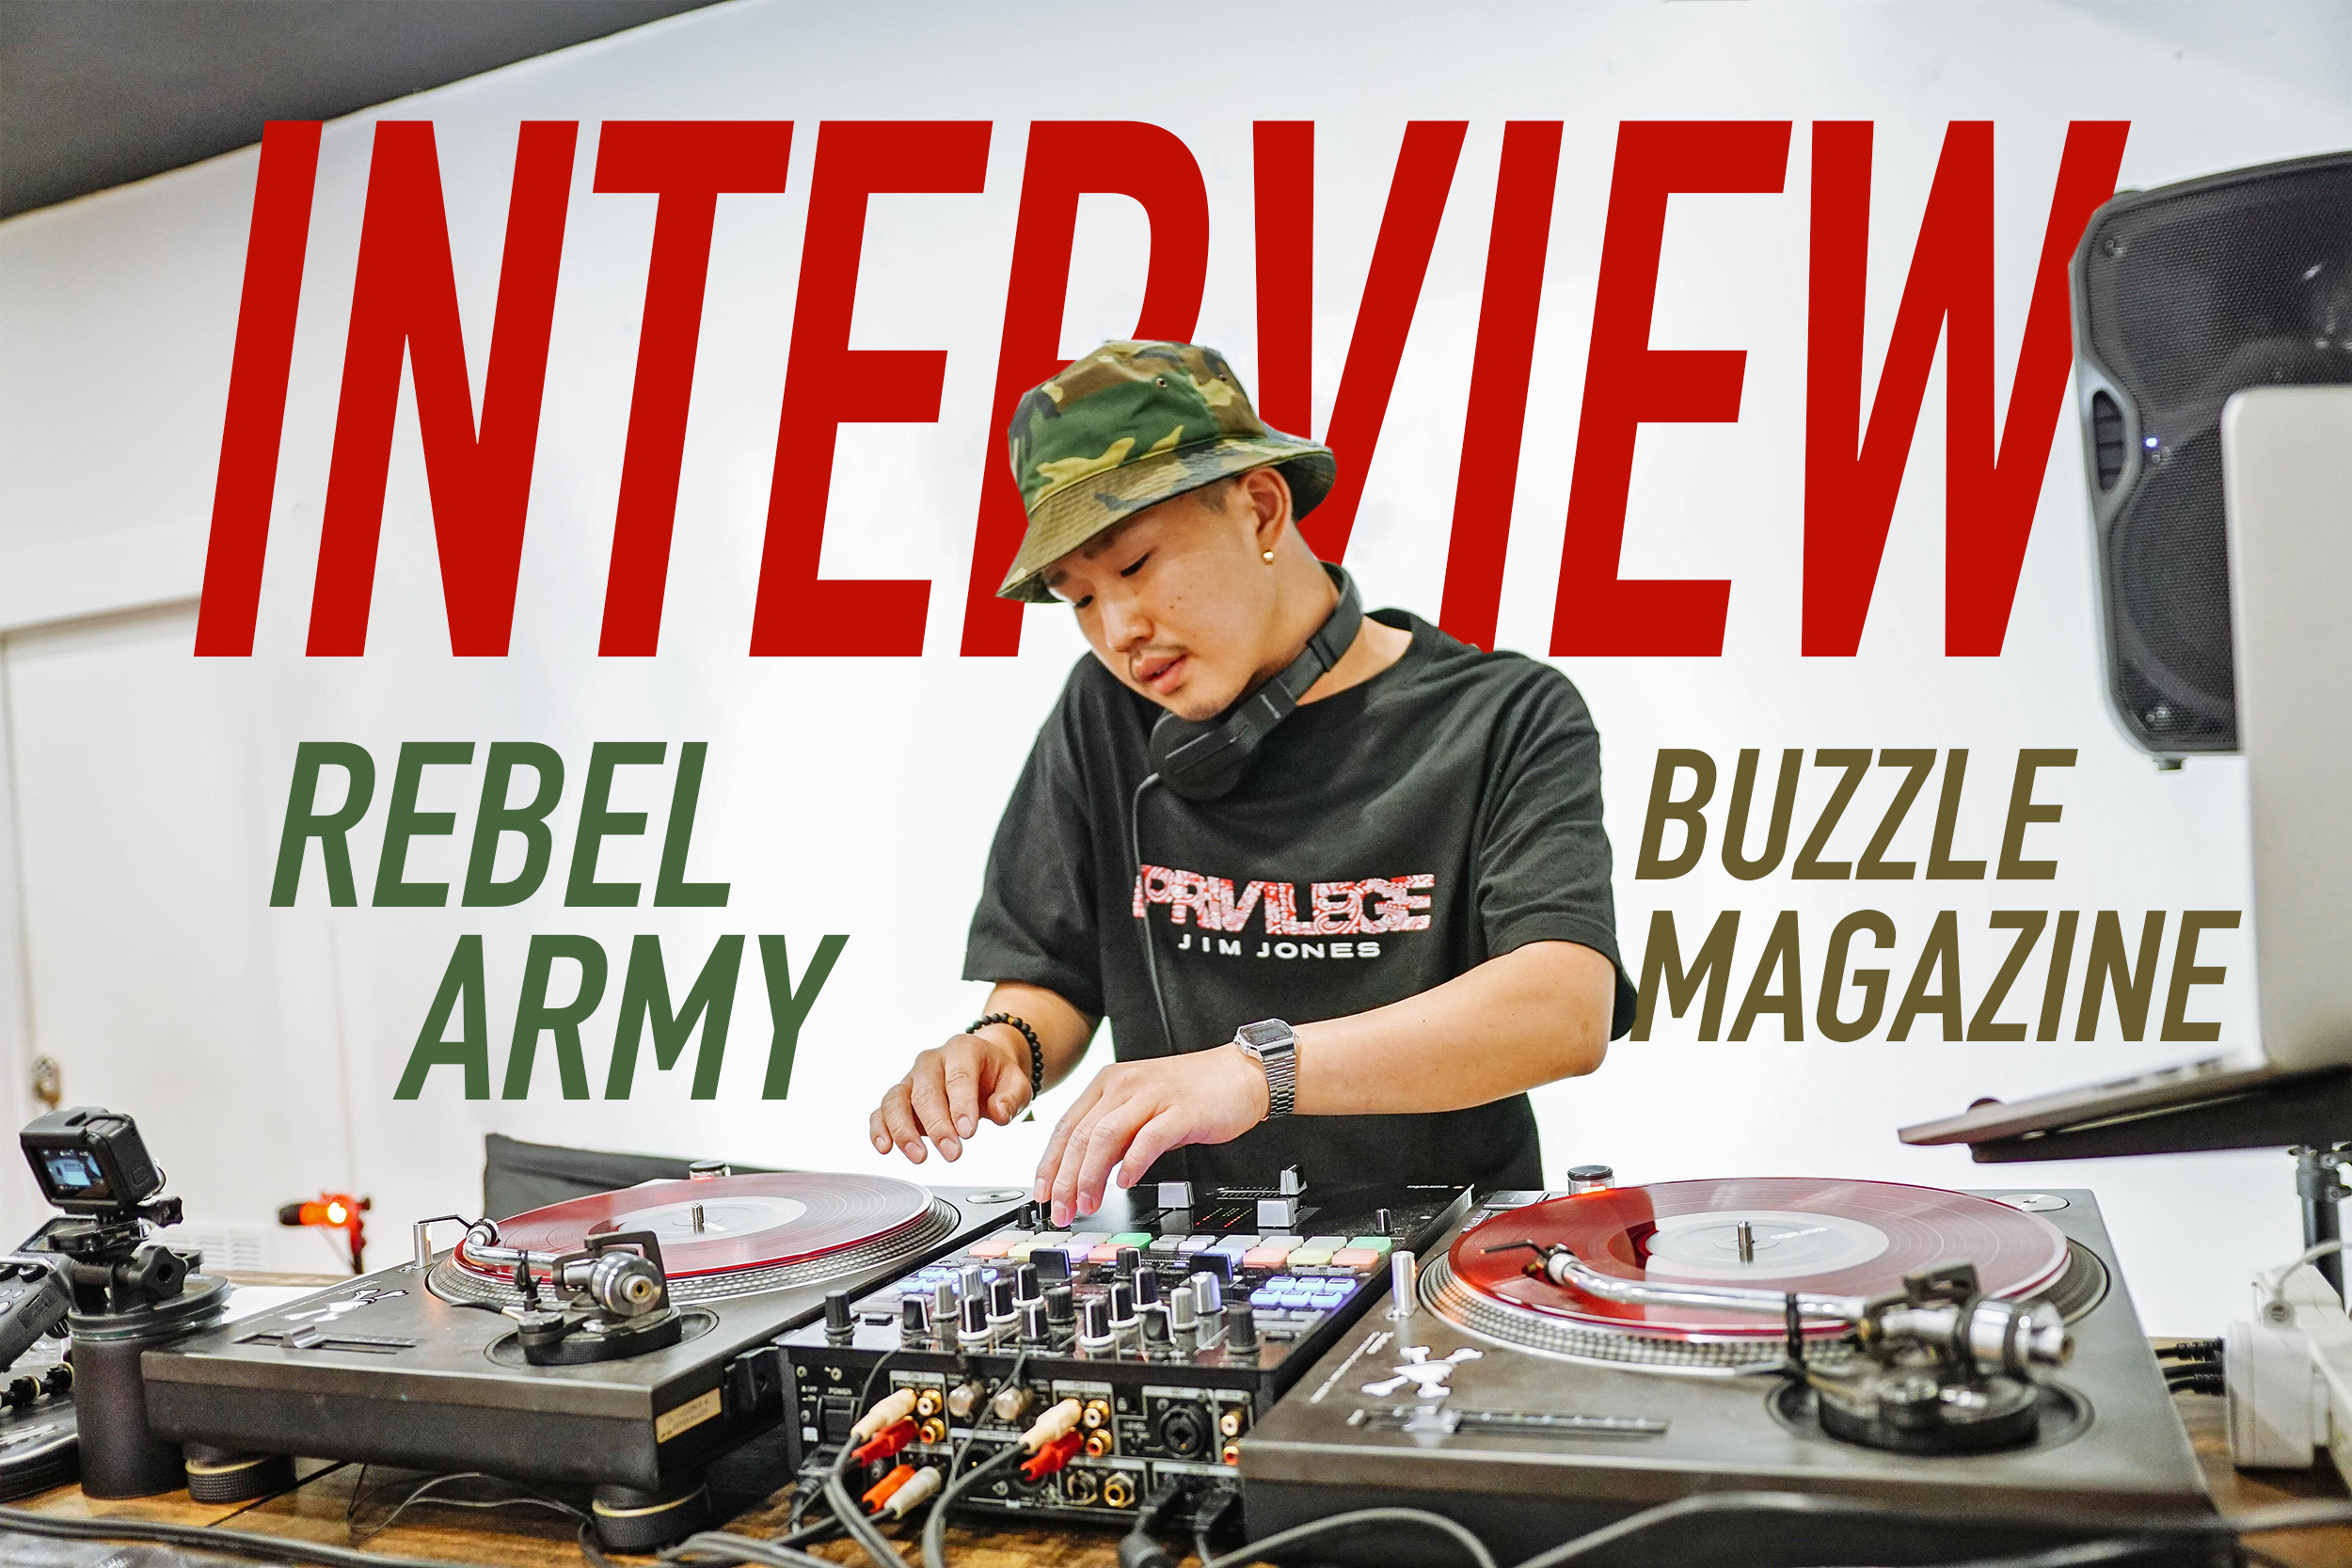 REBEL ARMY インタビュー | TO DI WORLD -世界で活躍する日本人-